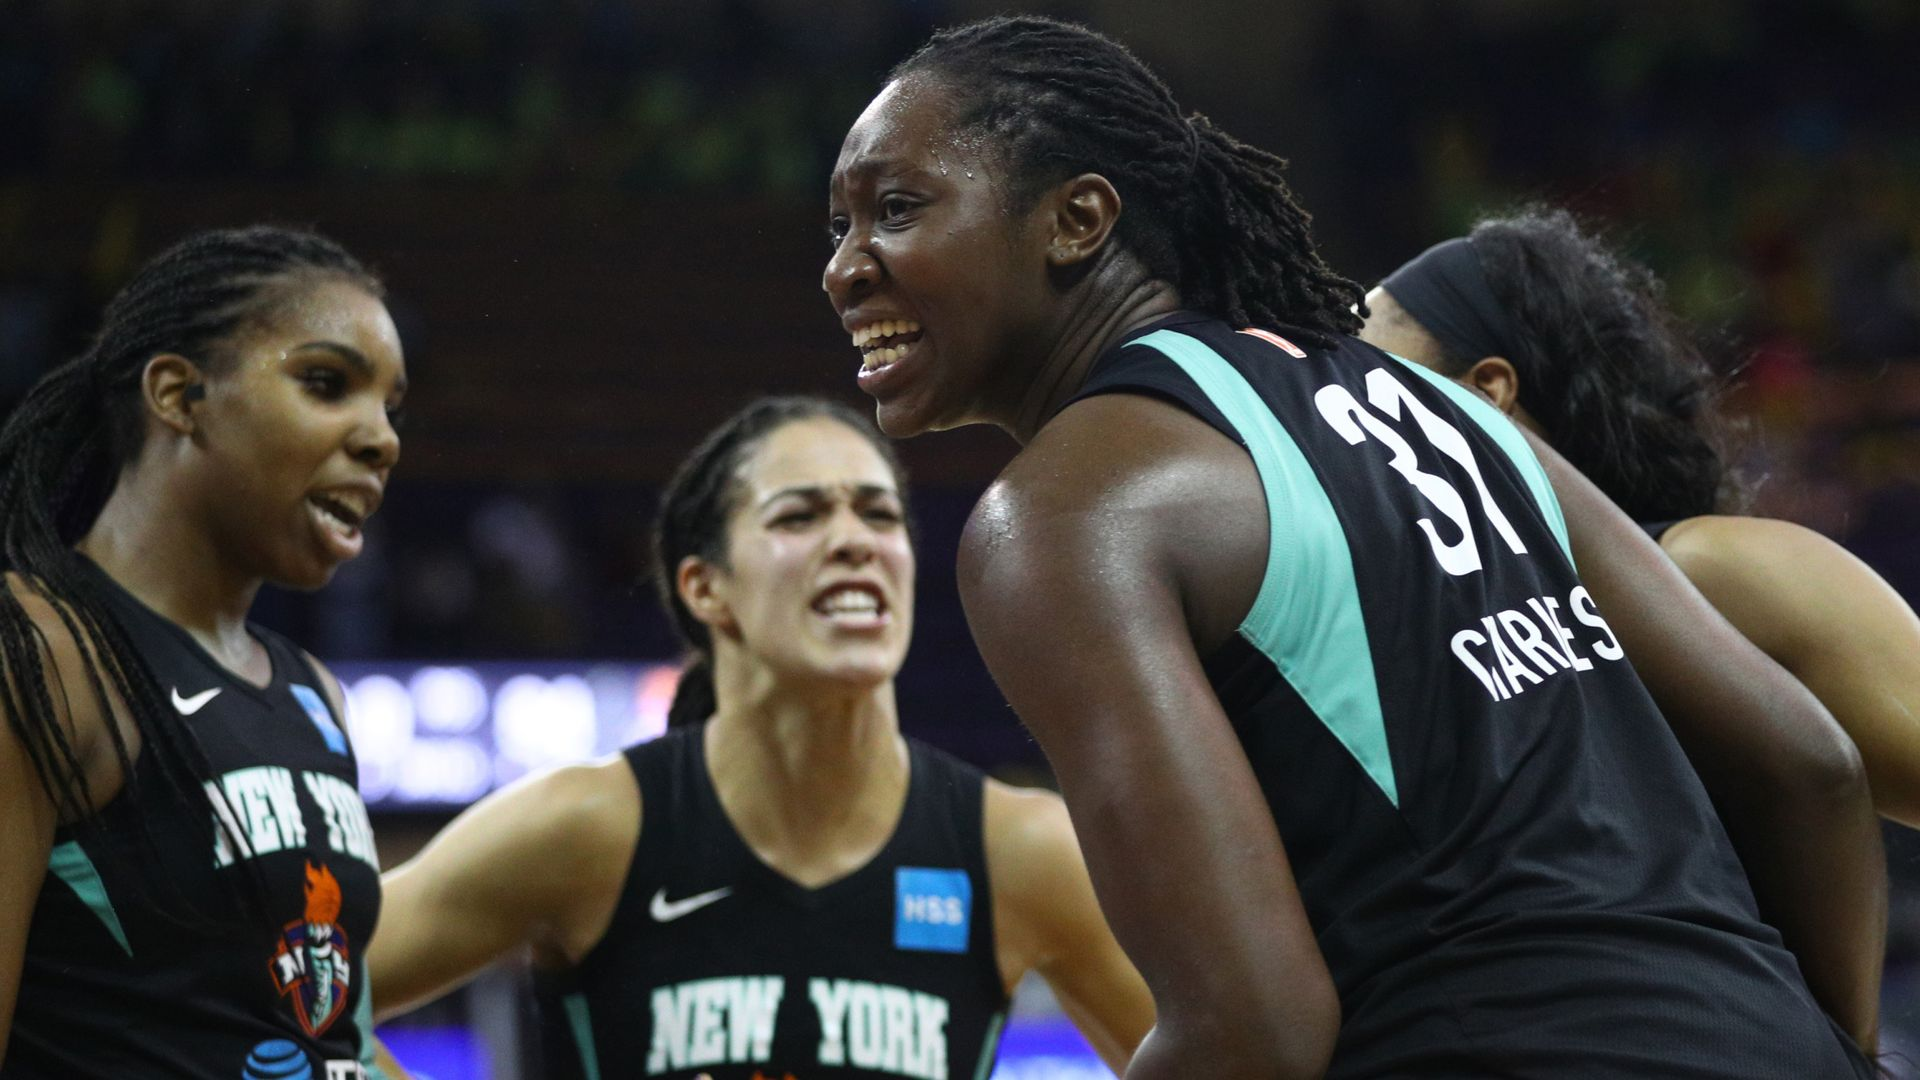 WNBA teams face tough decisions on roster cuts